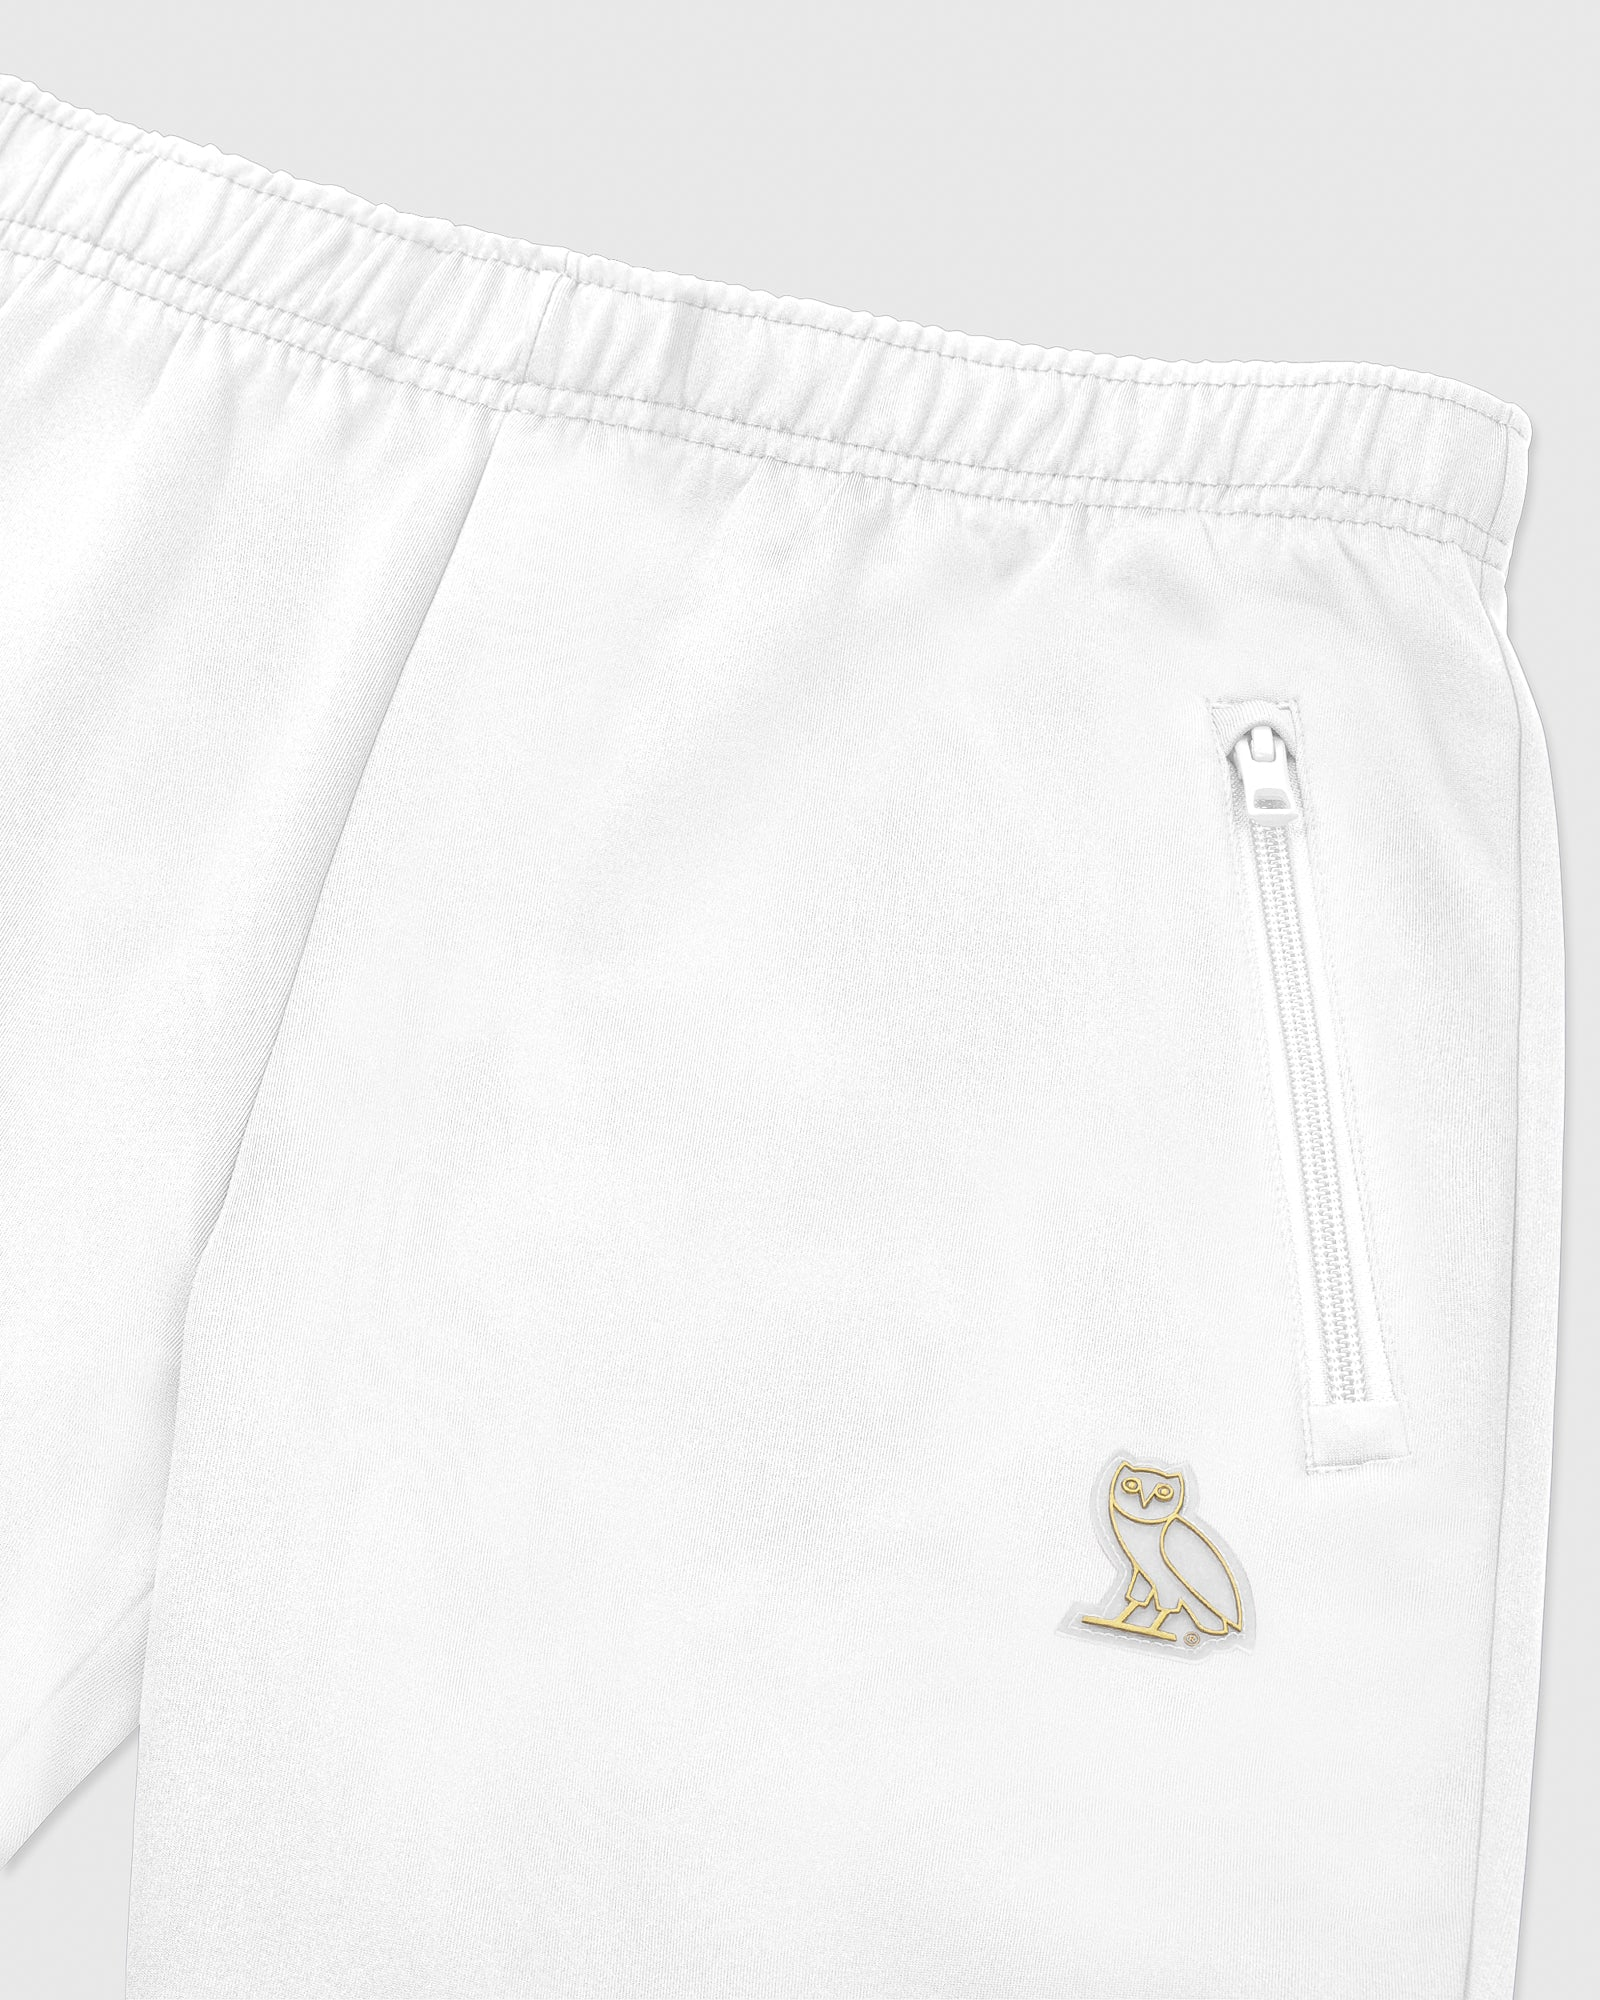 OVO SPORT TRACK PANT - WHITE